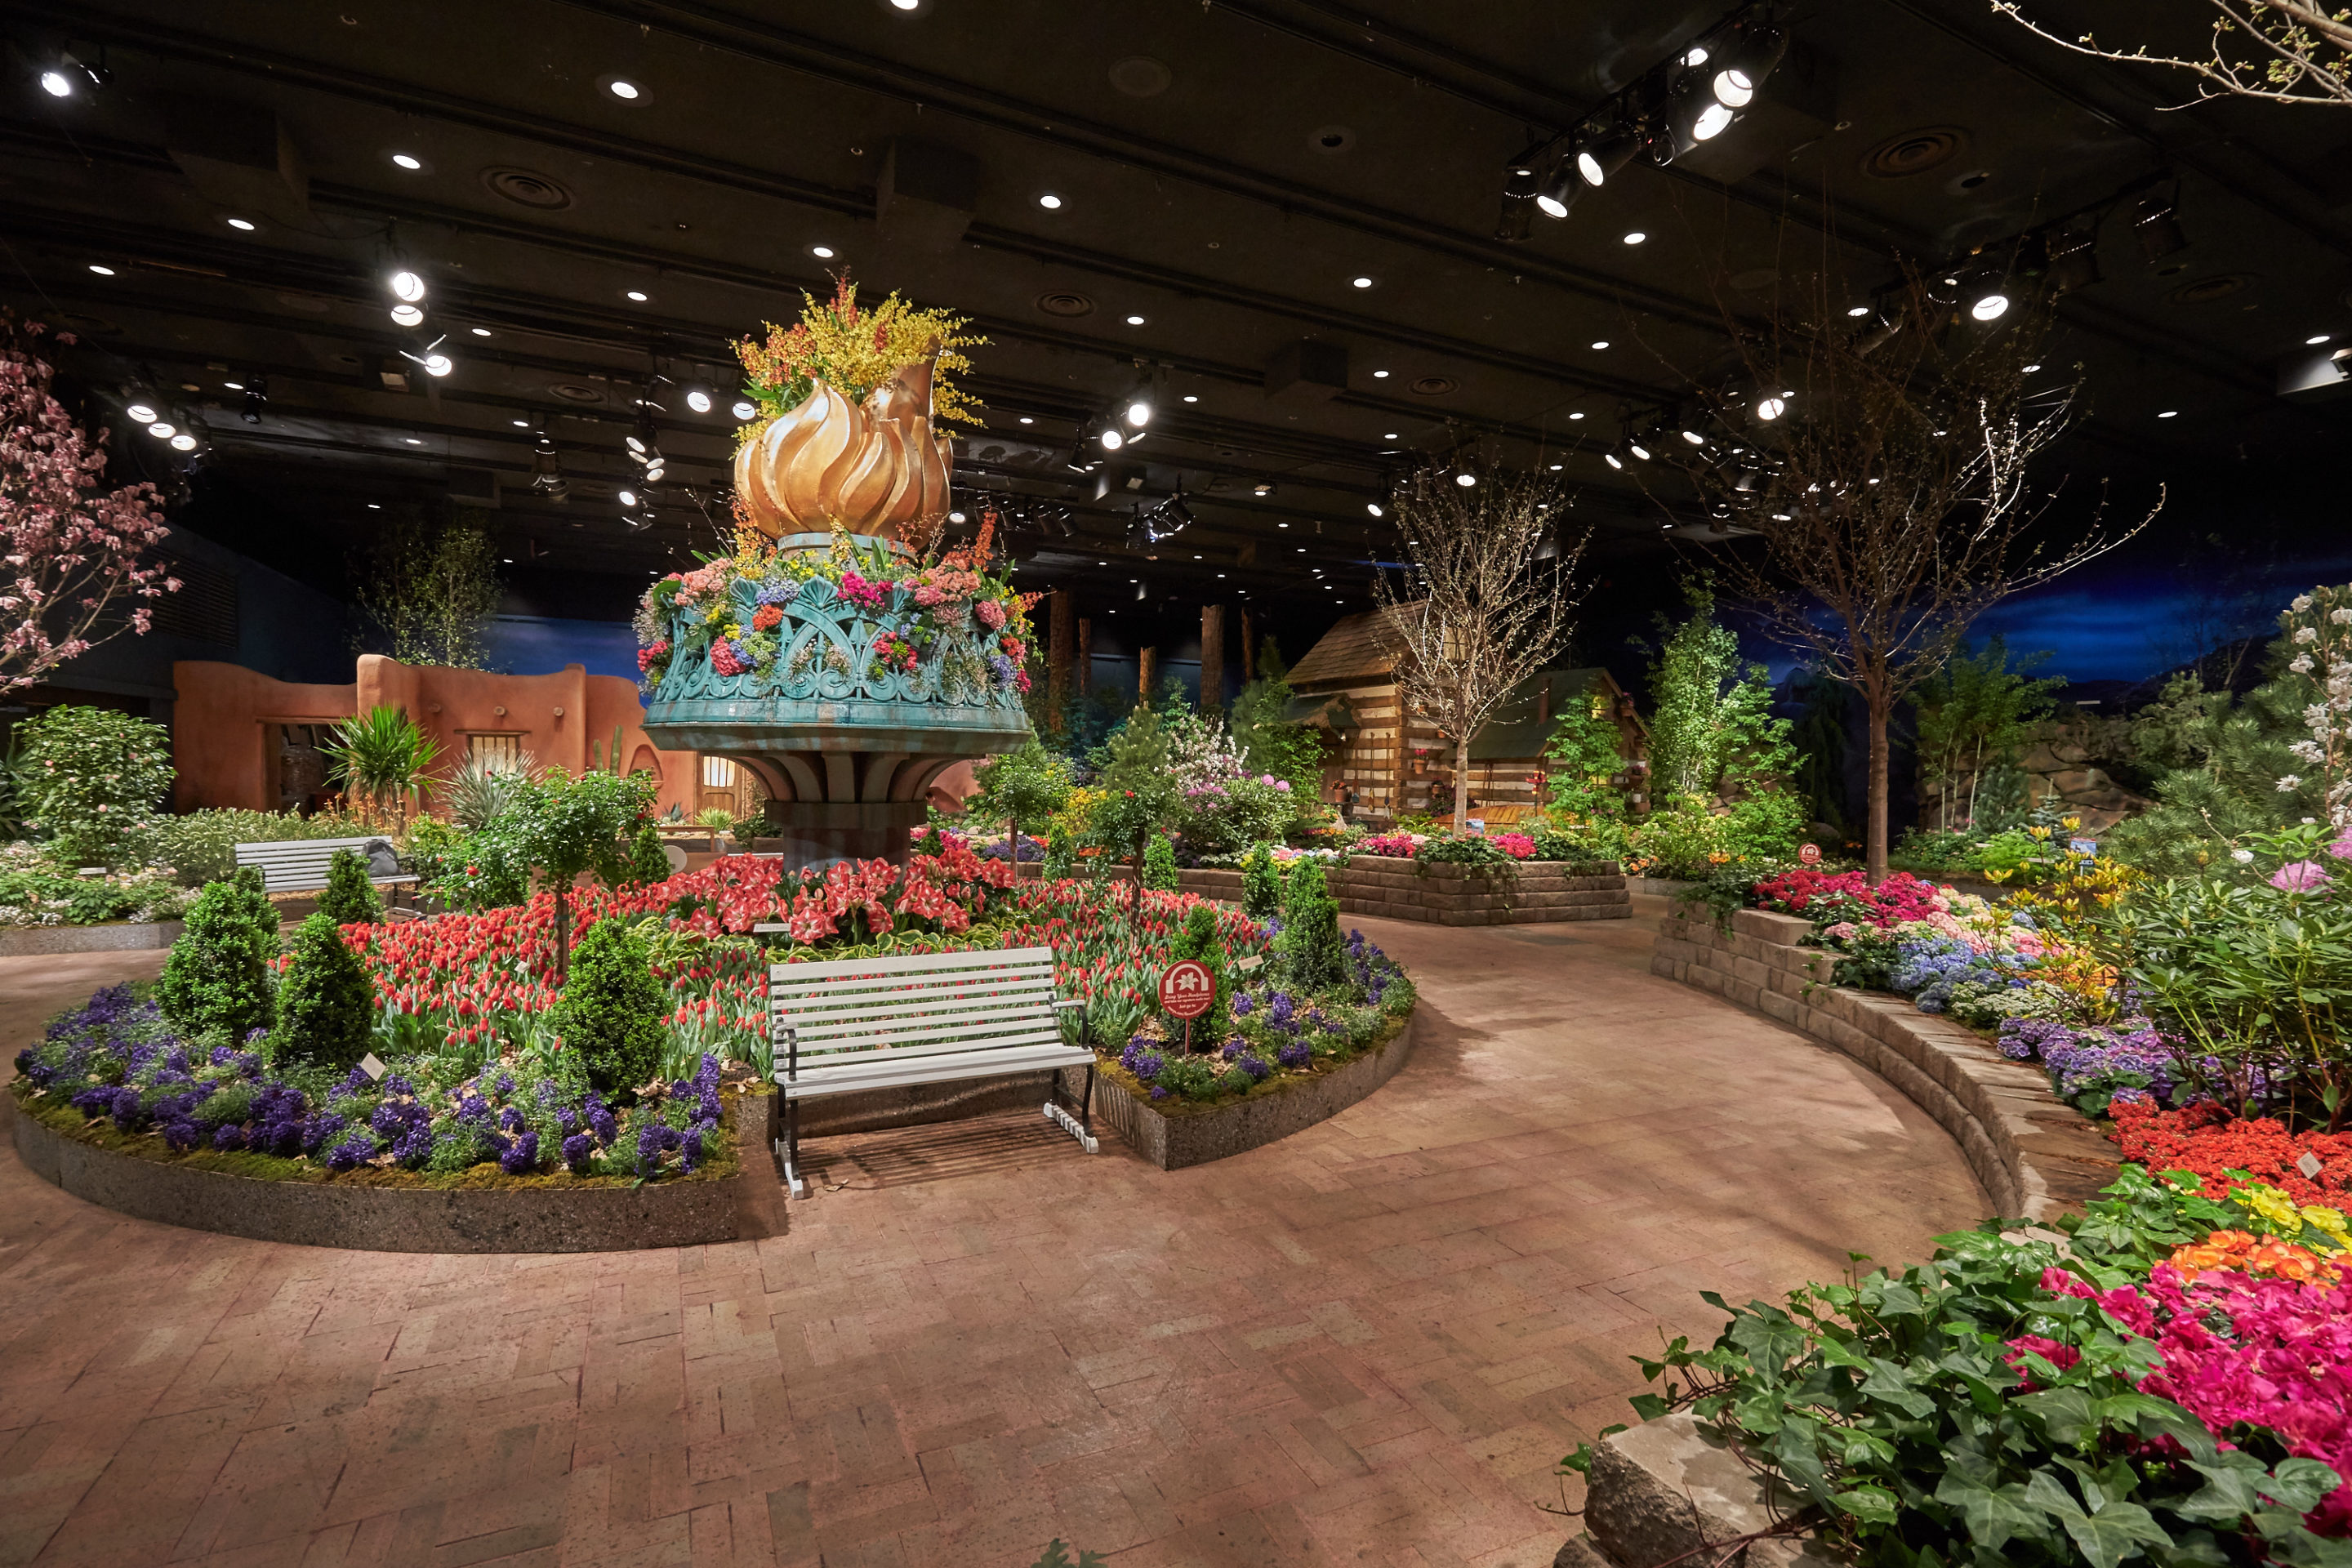 Macy\'s Flower Show Blooms with All-American Splendor - Midwest Home